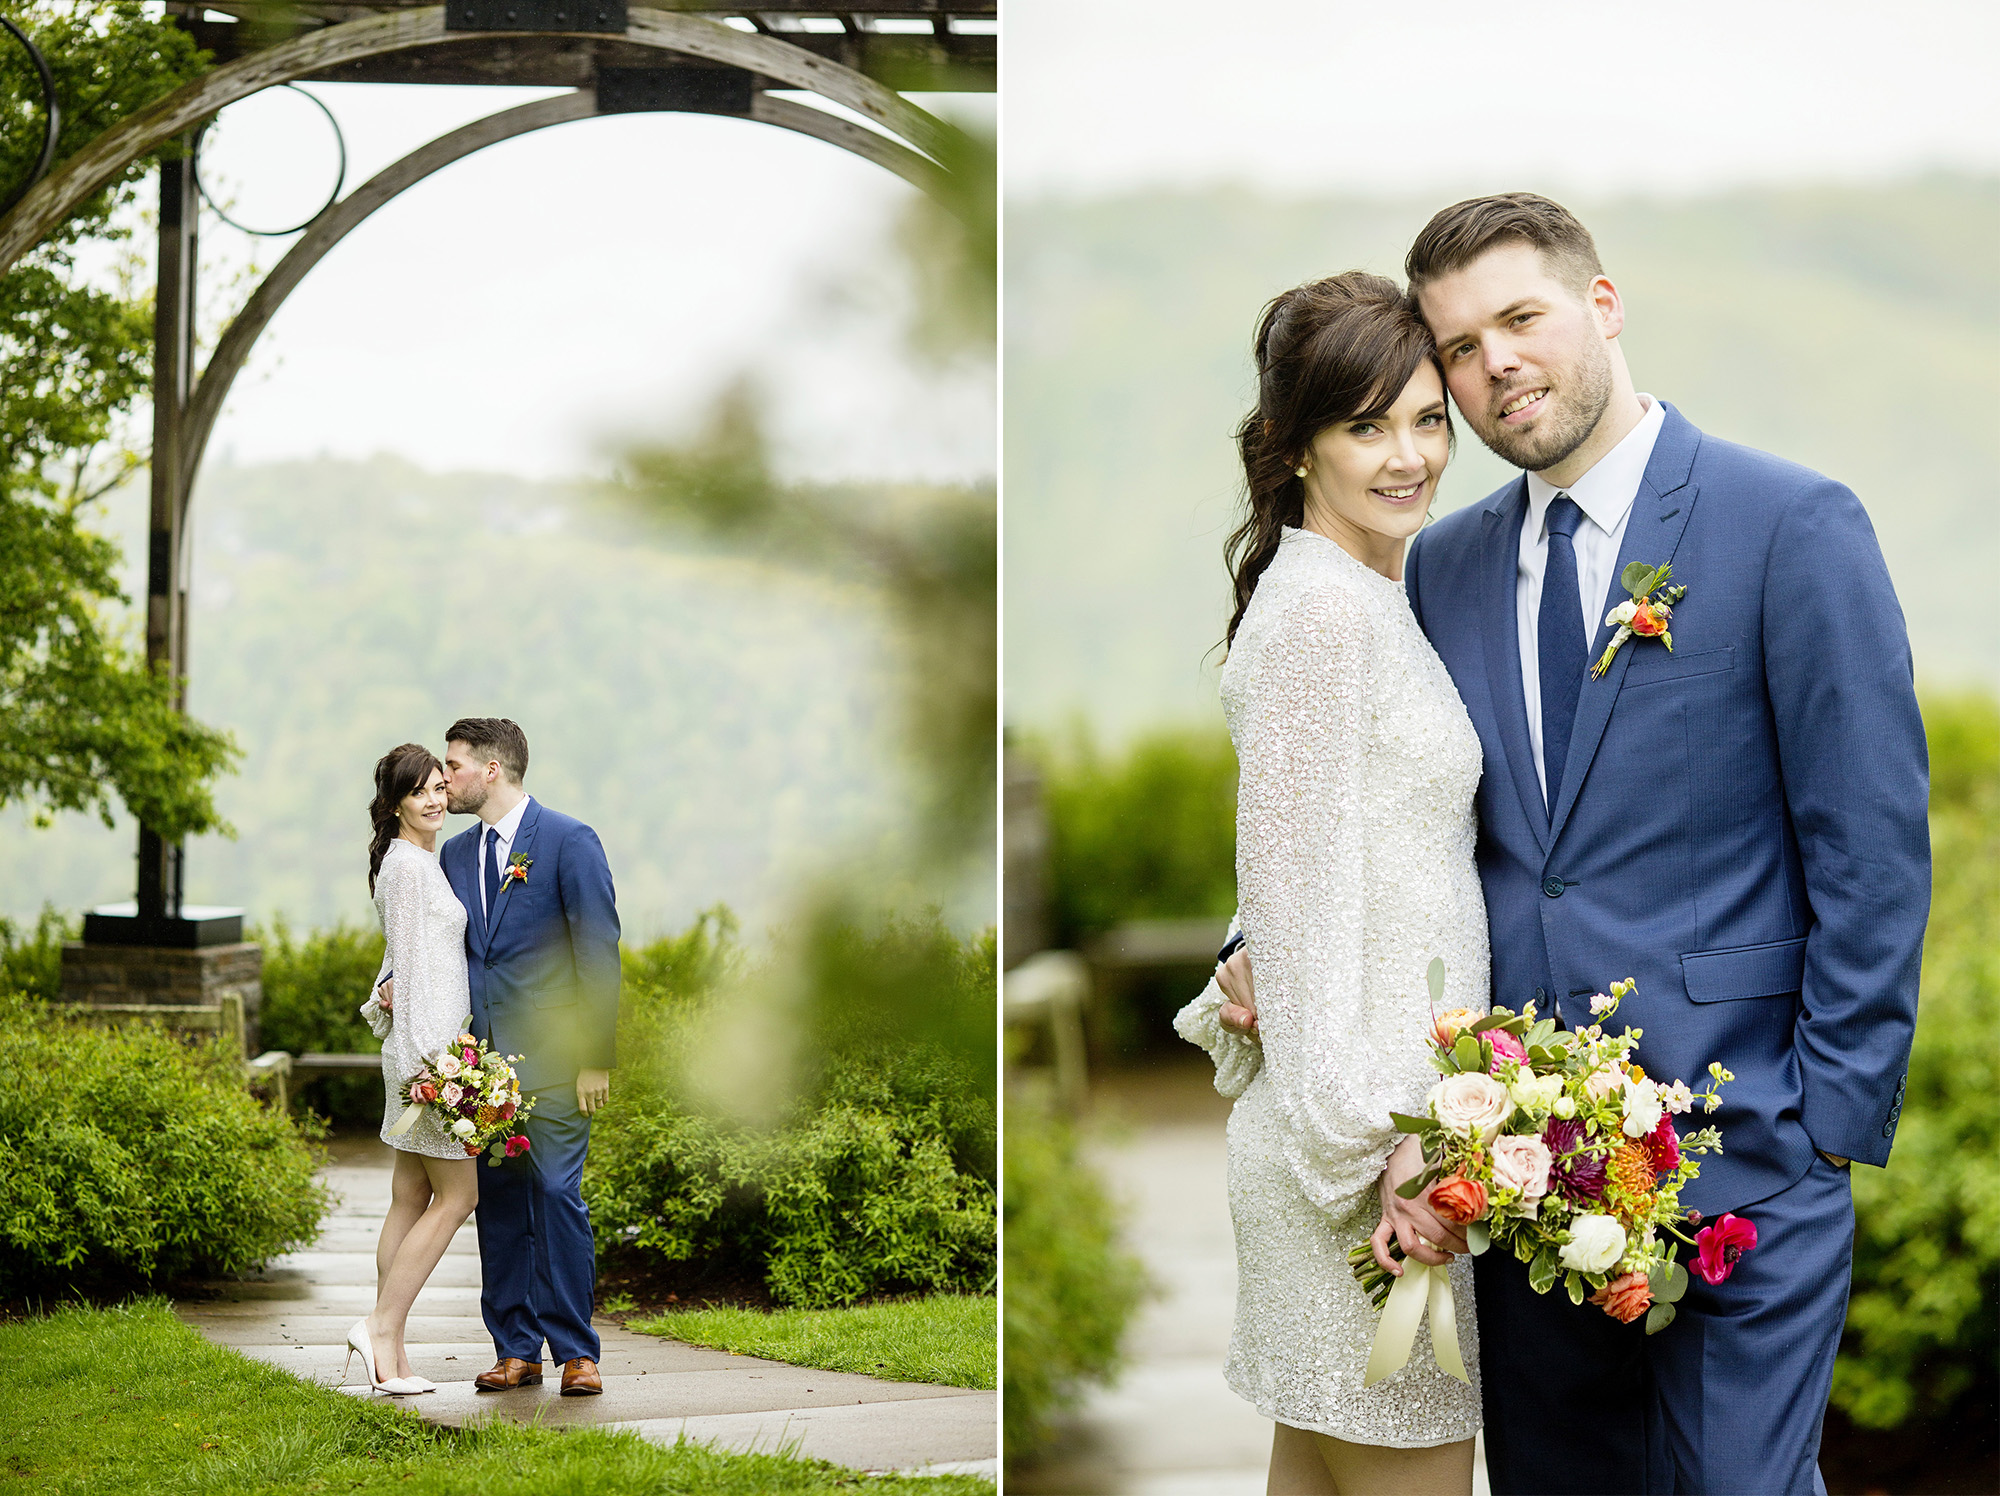 Seriously_Sabrina_Photography_Cincinnati_Ohio_Alms_Park_Elopement_Lauren_Aaron_45.jpg